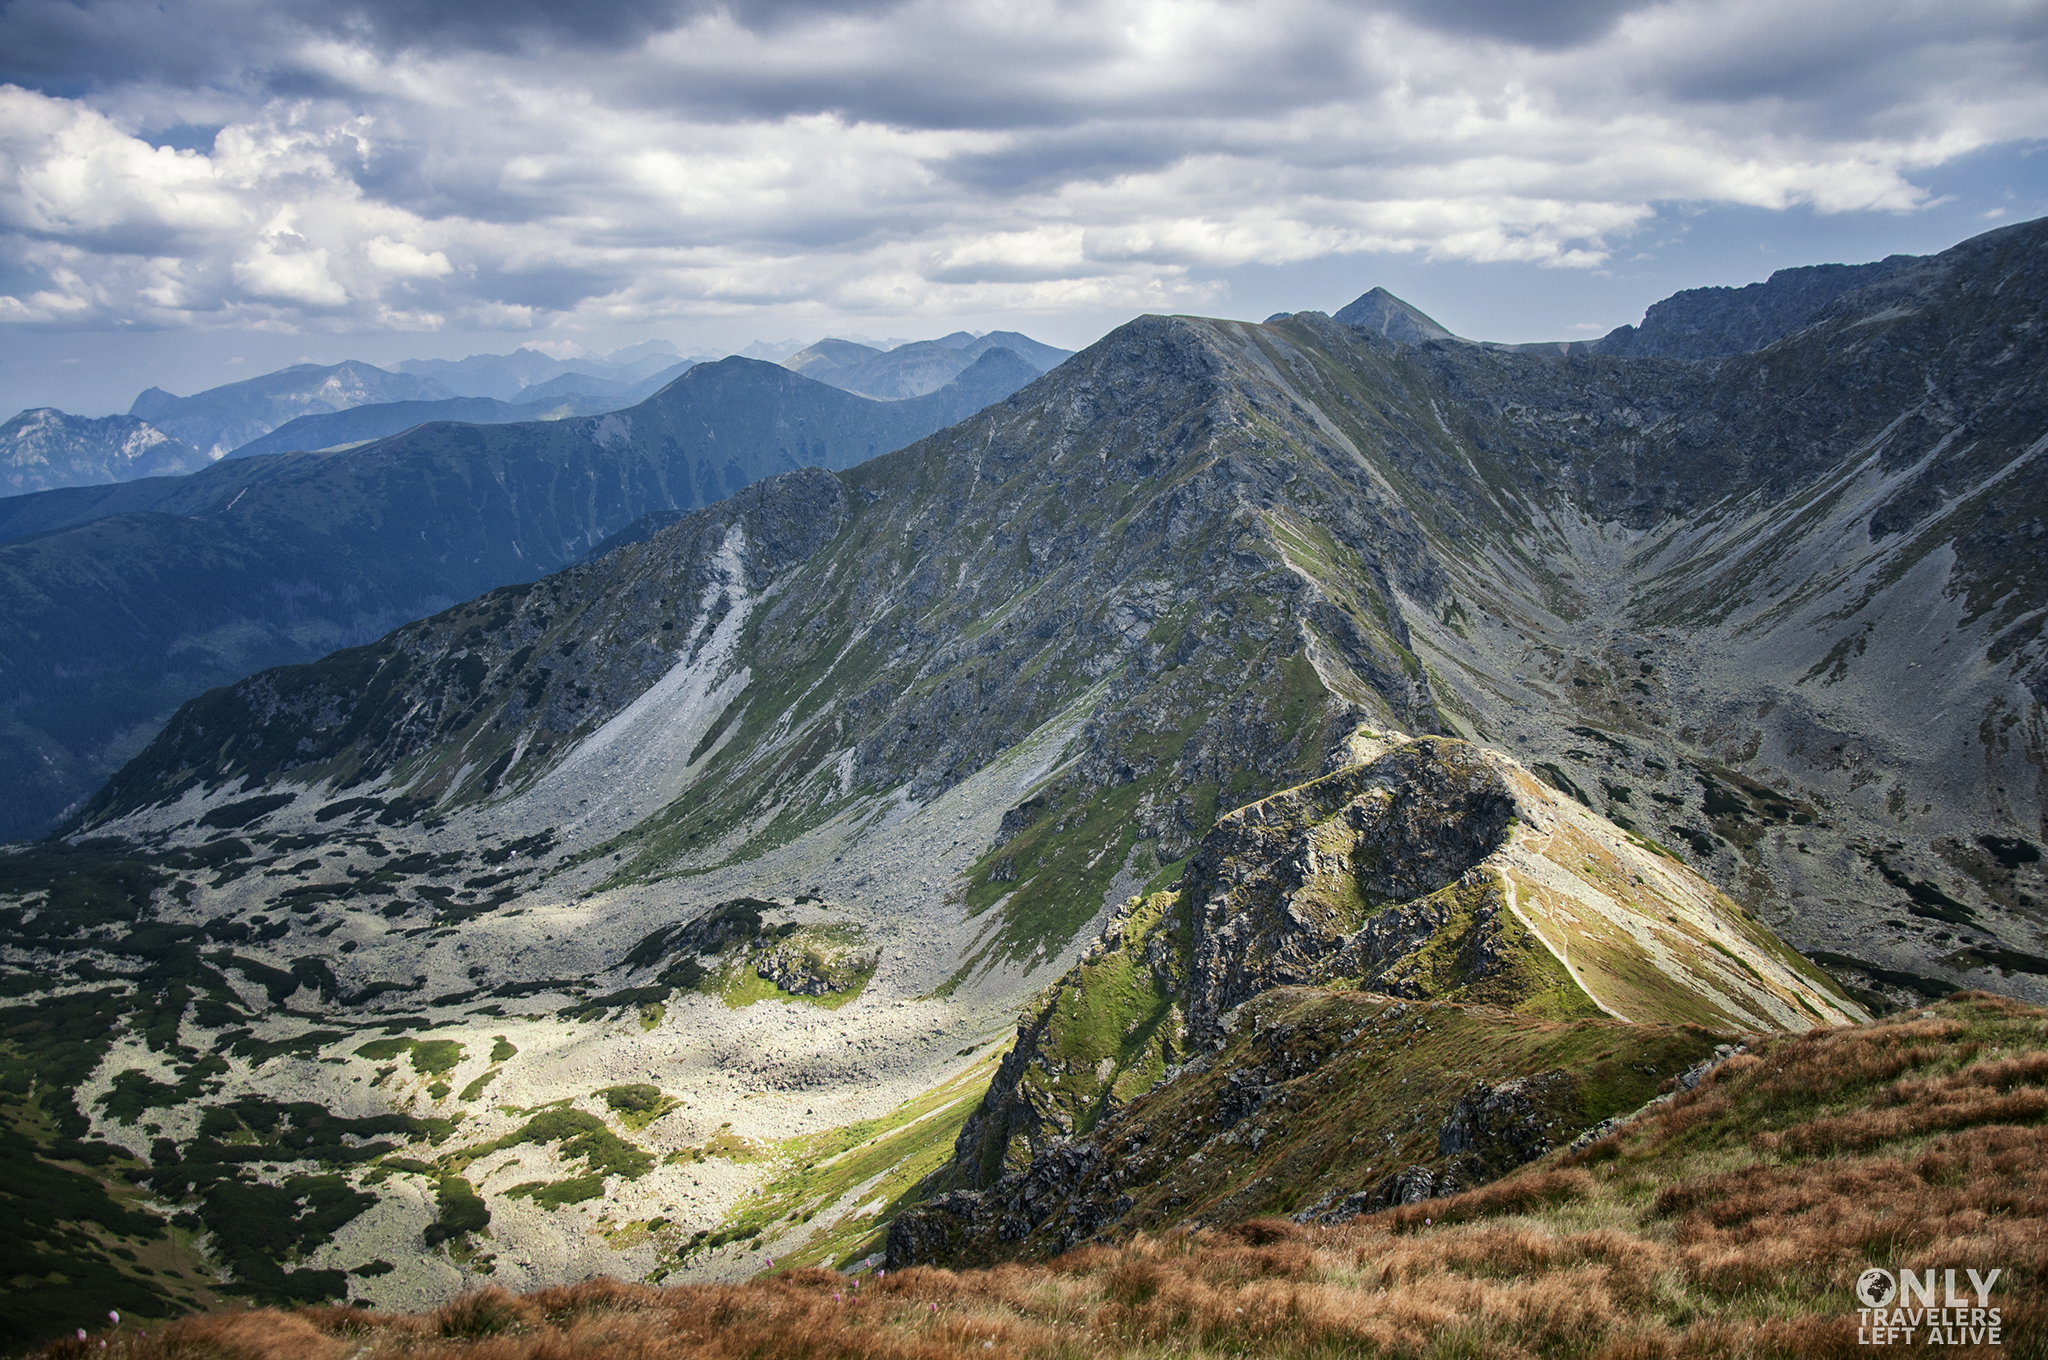 Tatry Zachodnie - Only Travelers Left Alive